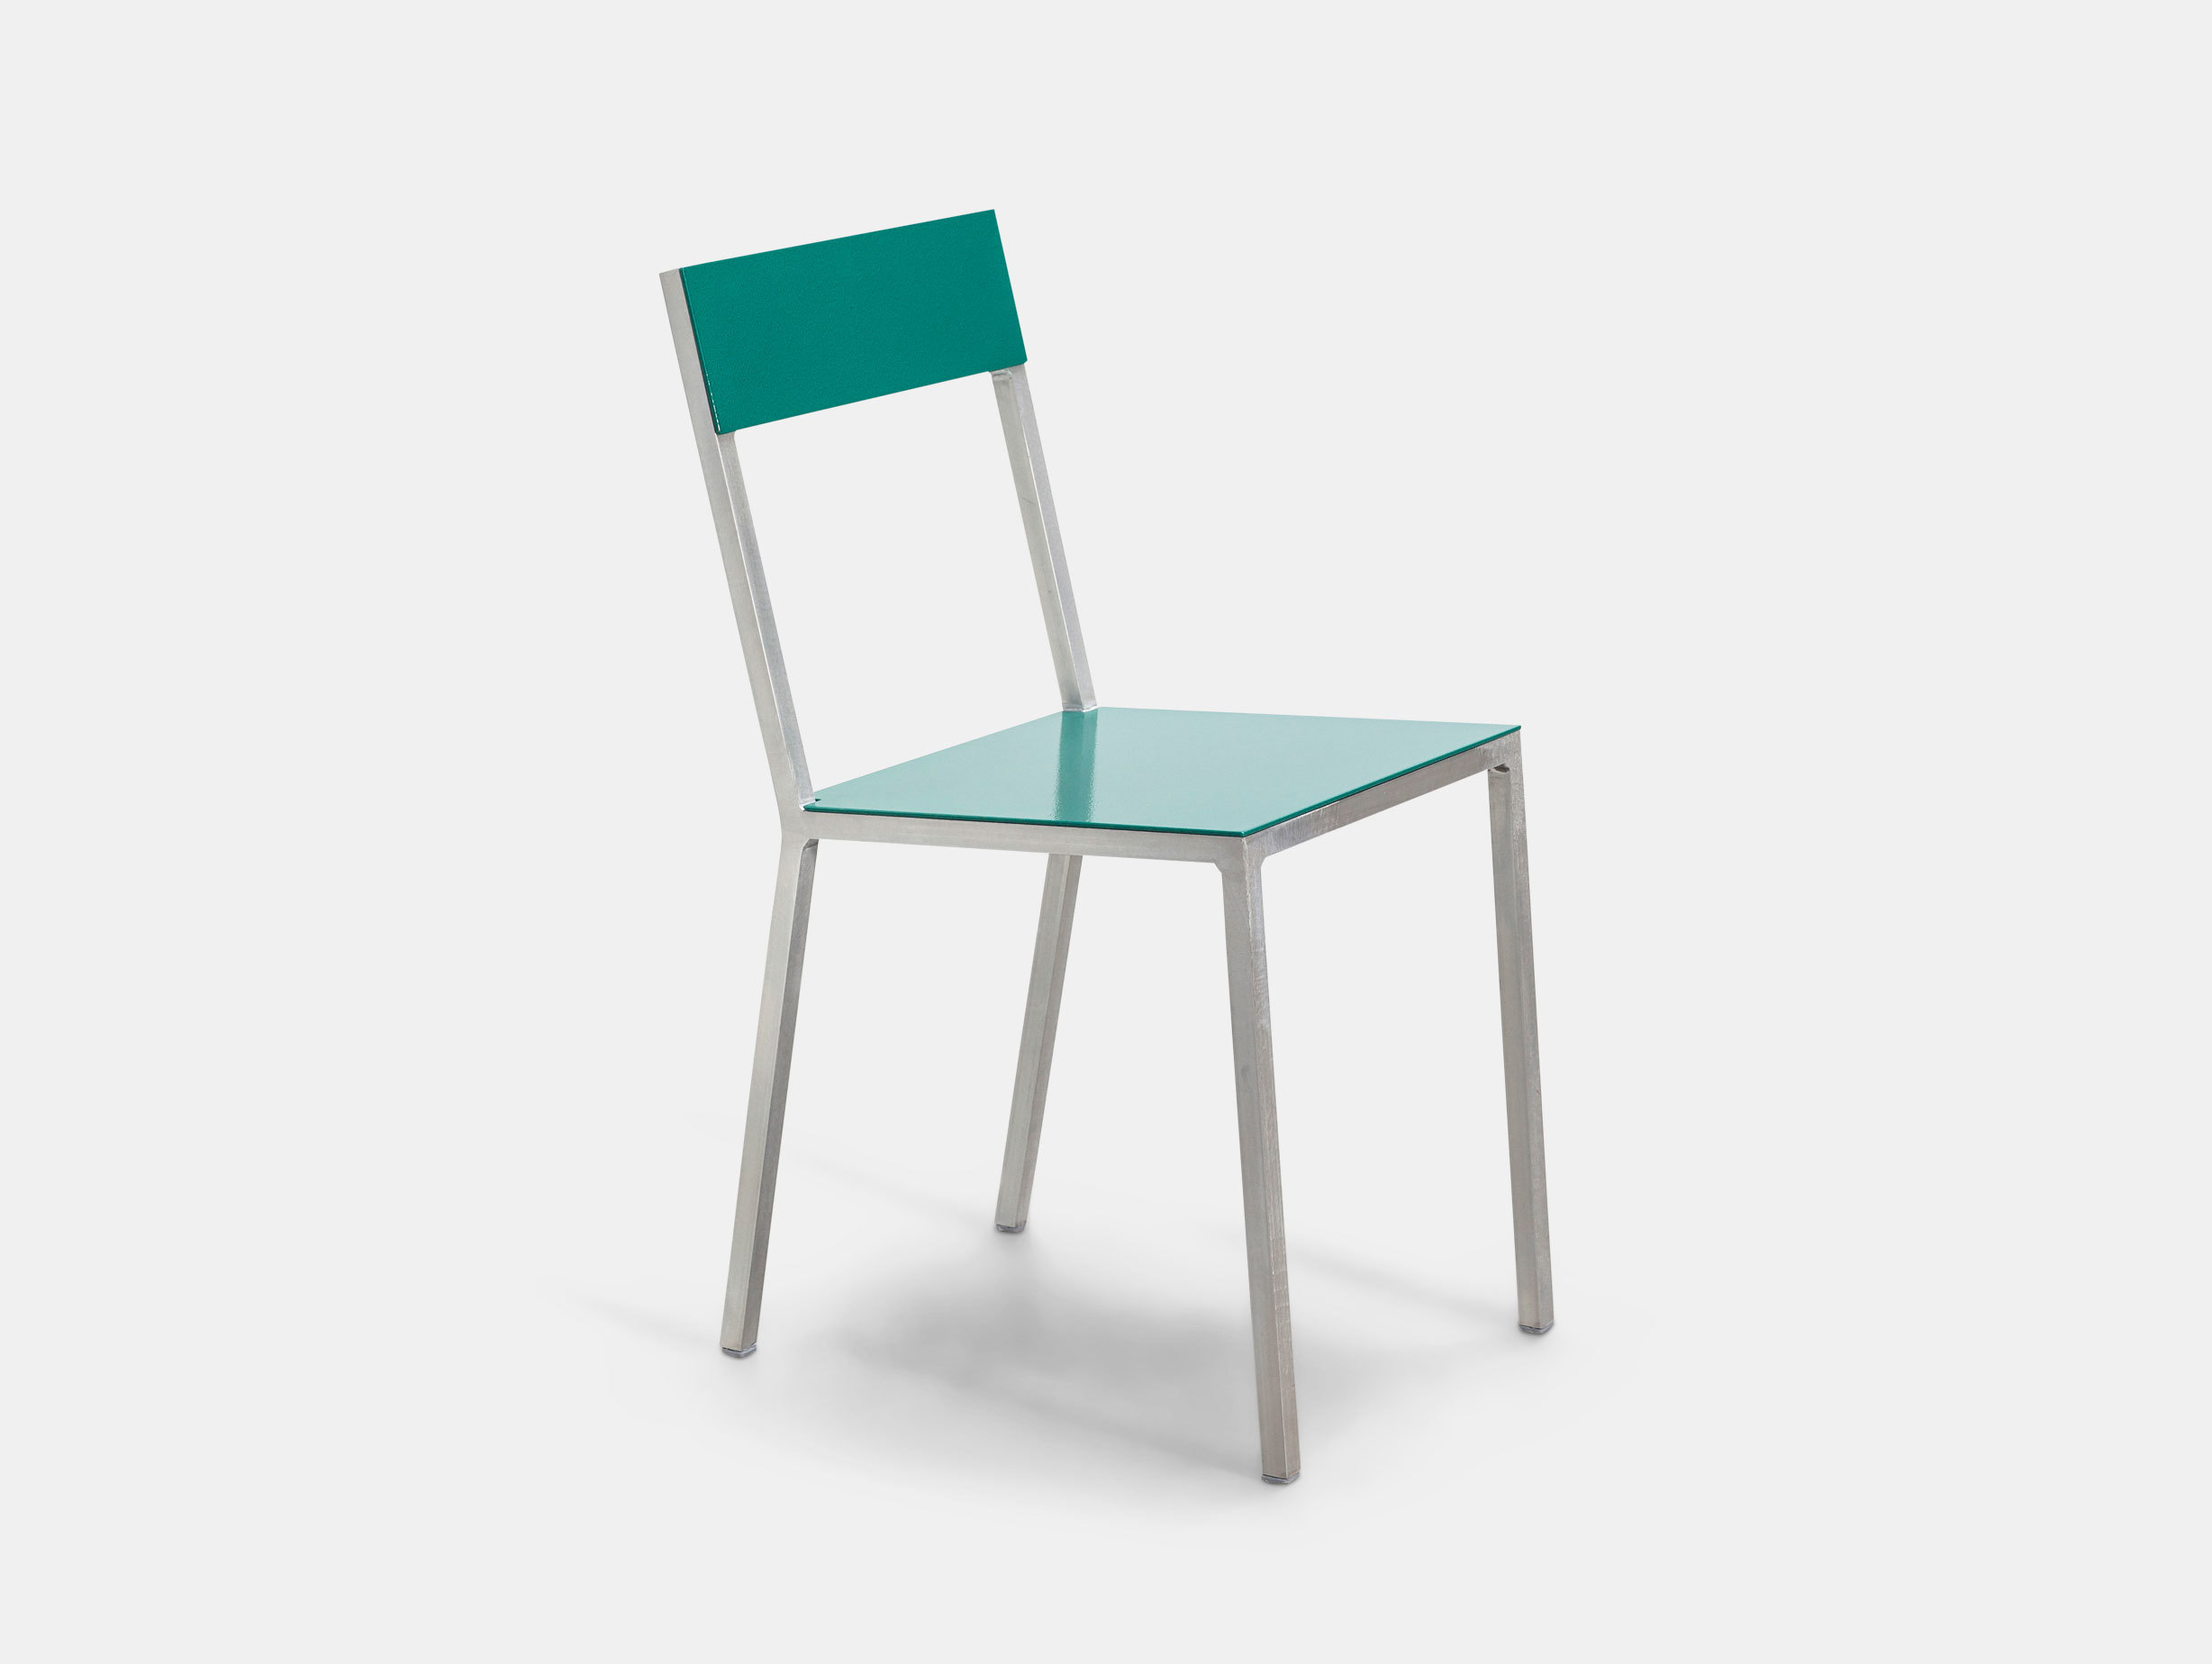 Alu Chair image 11